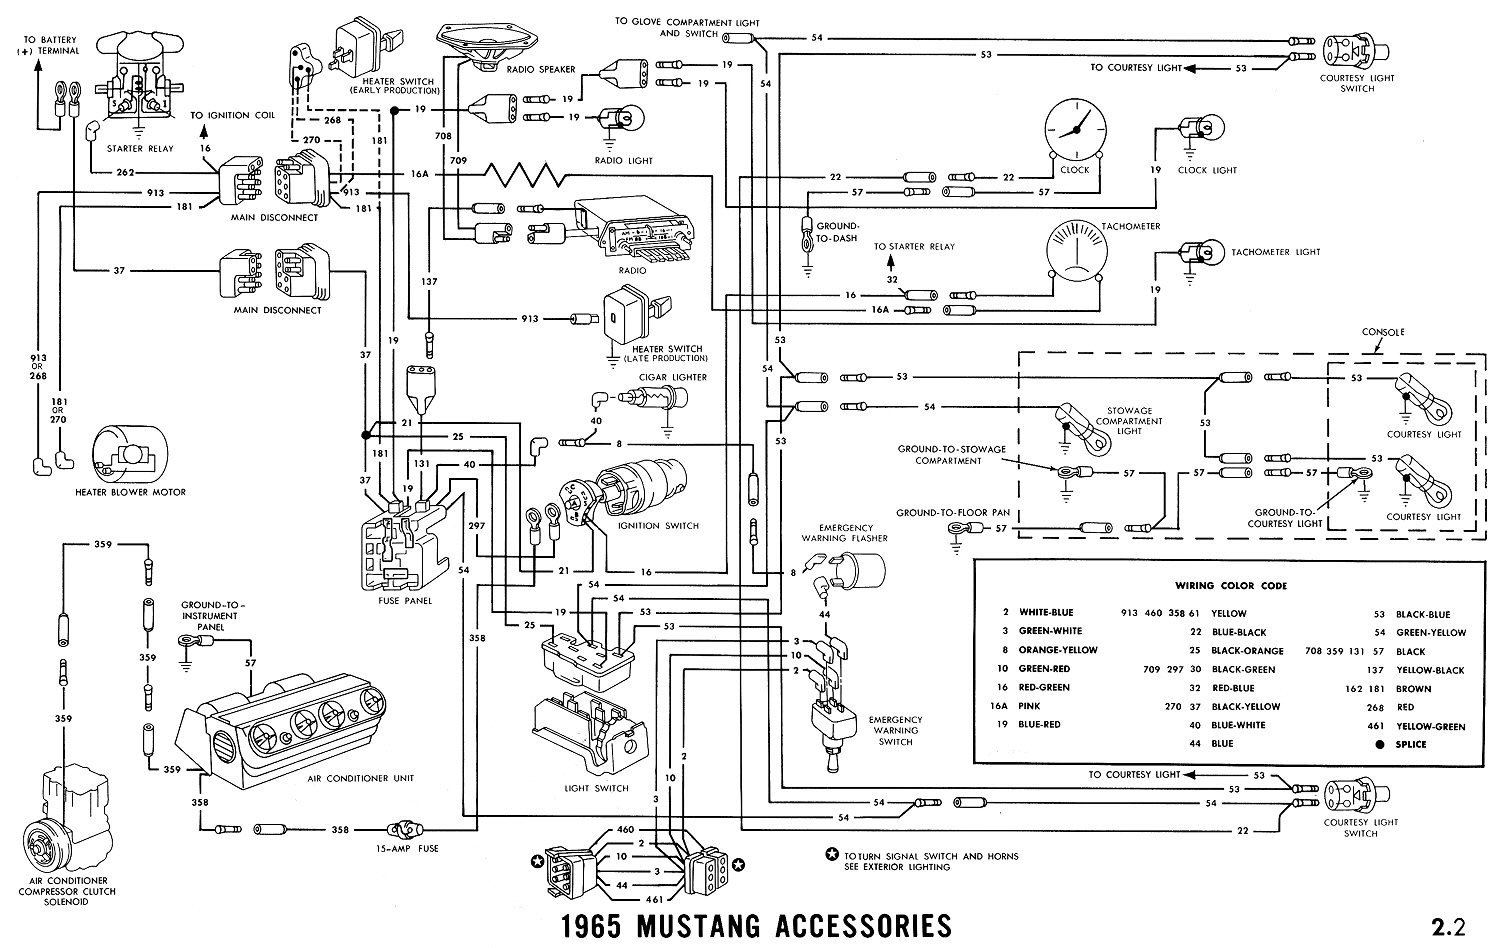 1965i 1965 mustang wiring diagrams average joe restoration 1967 Mustang Wiring Schematic at alyssarenee.co